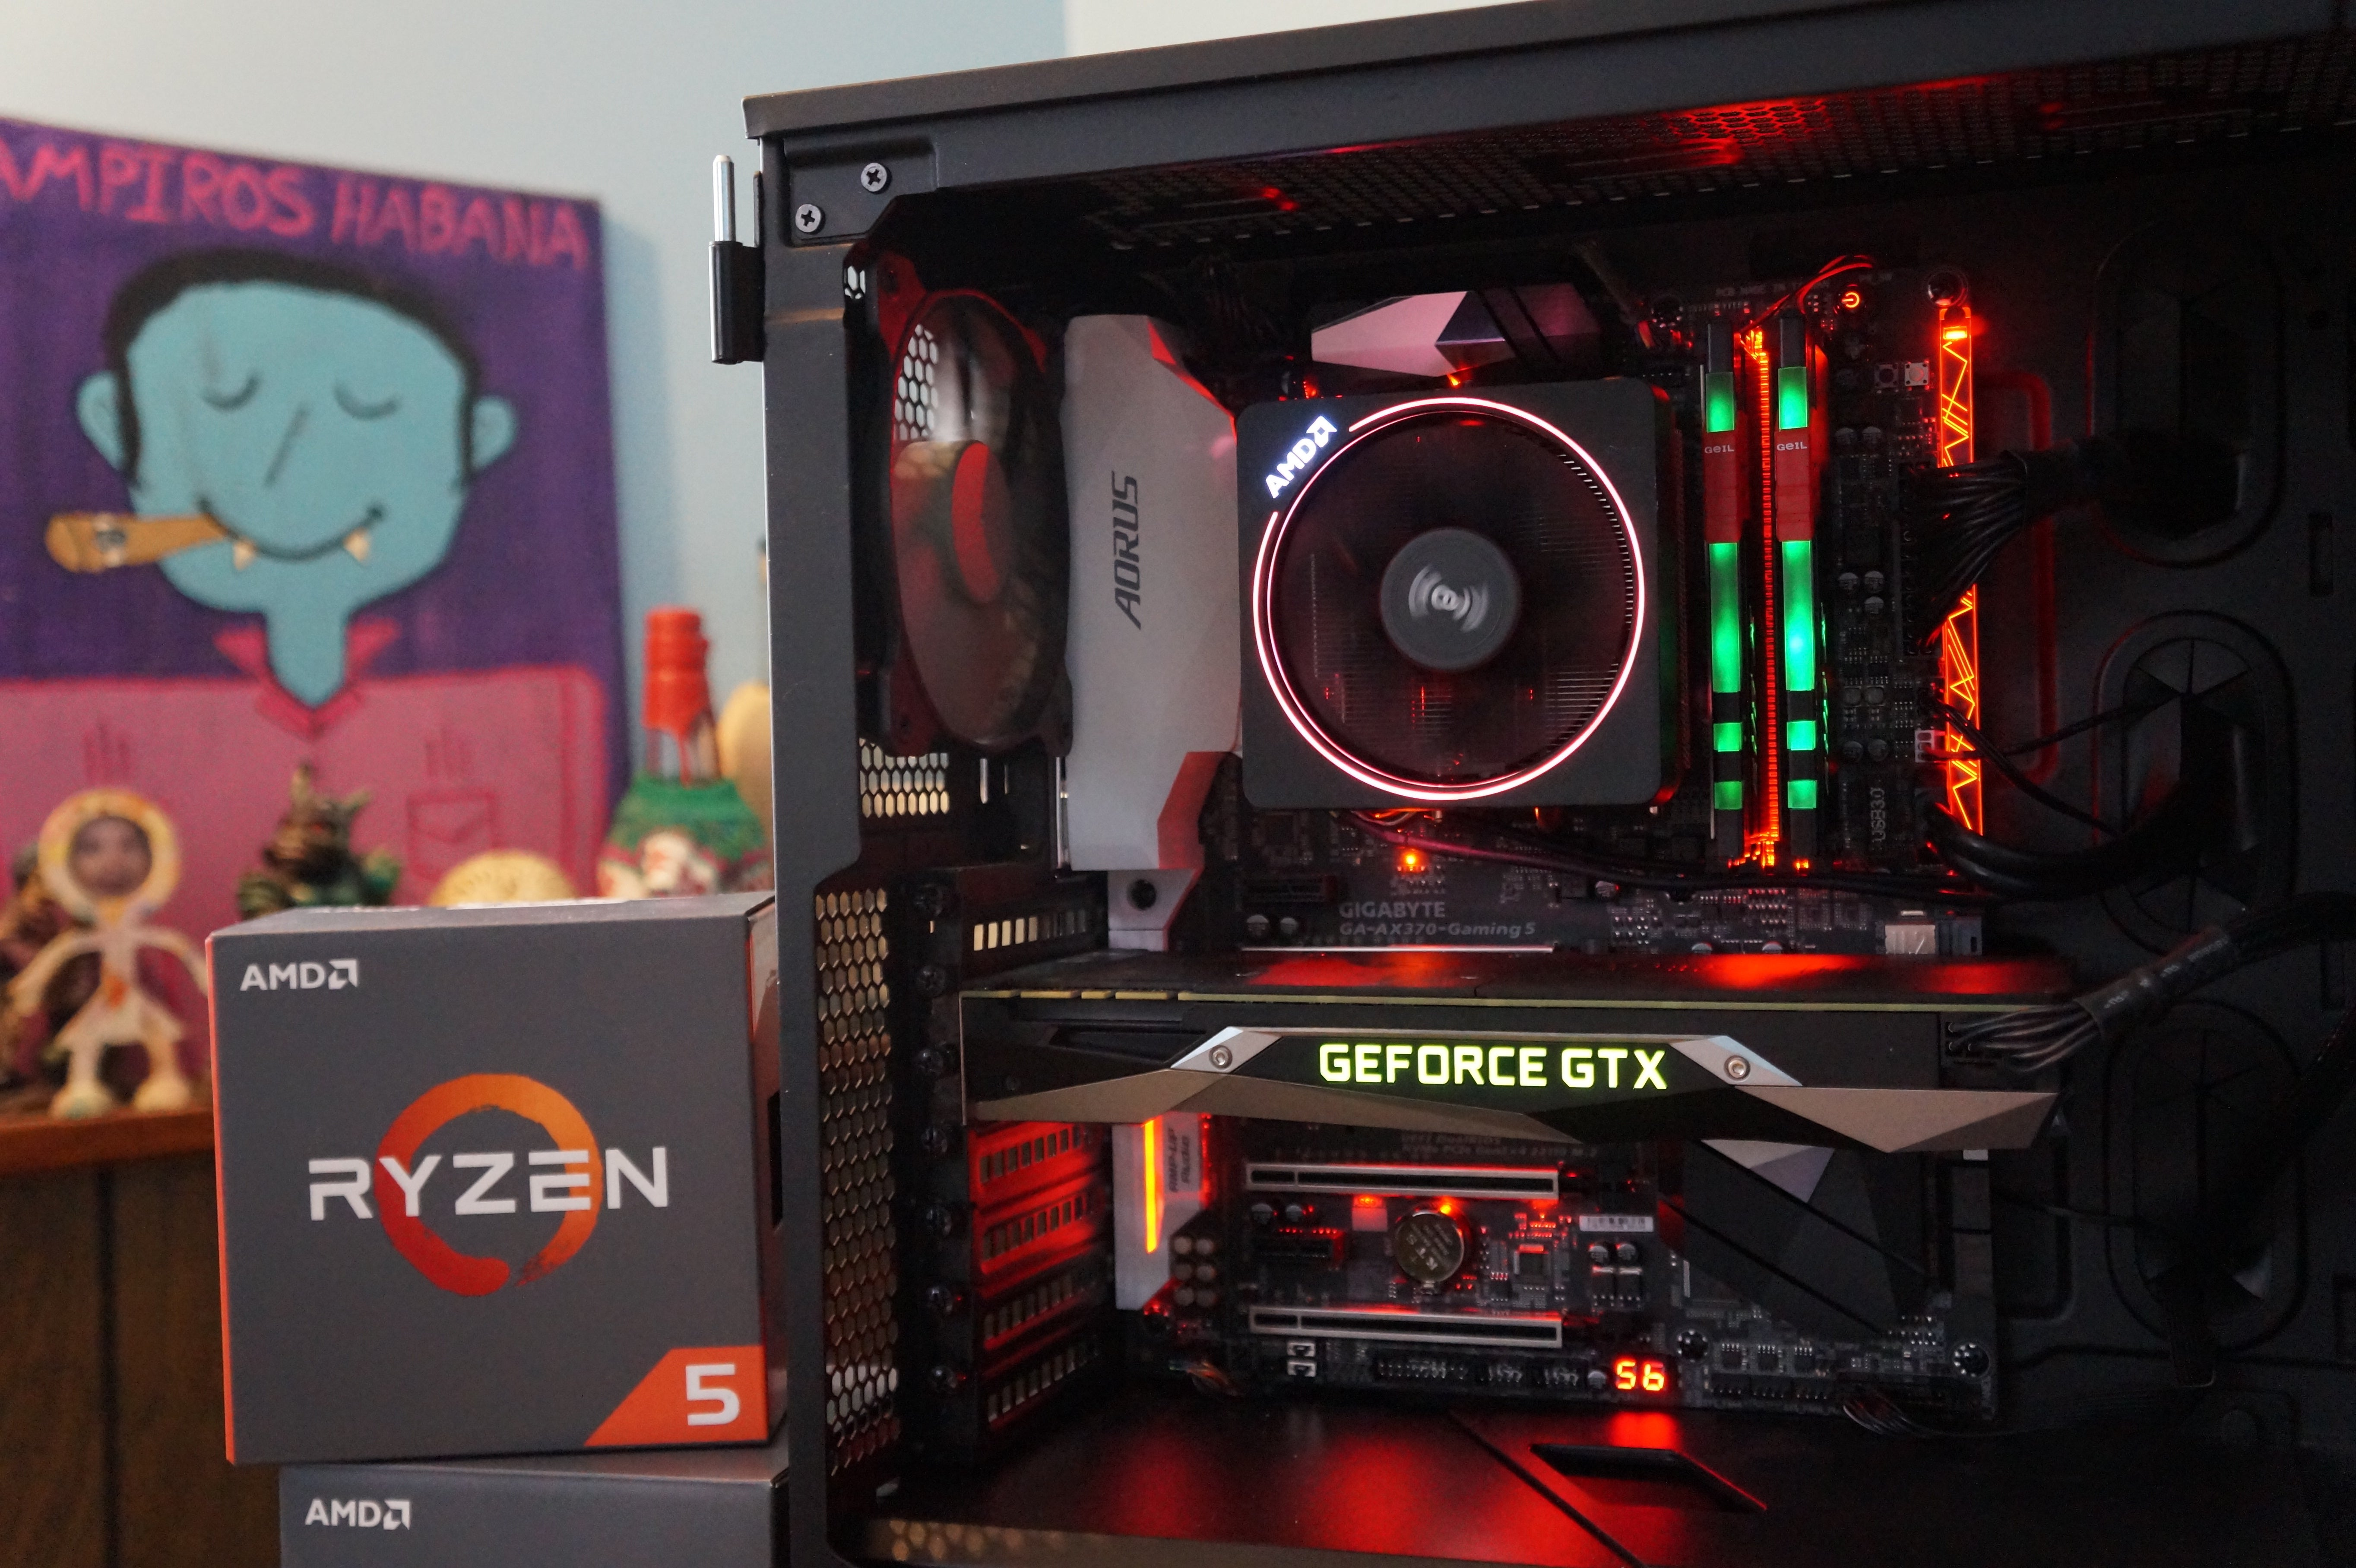 Ryzen 5 1600X: Building a versatile work and play PC with